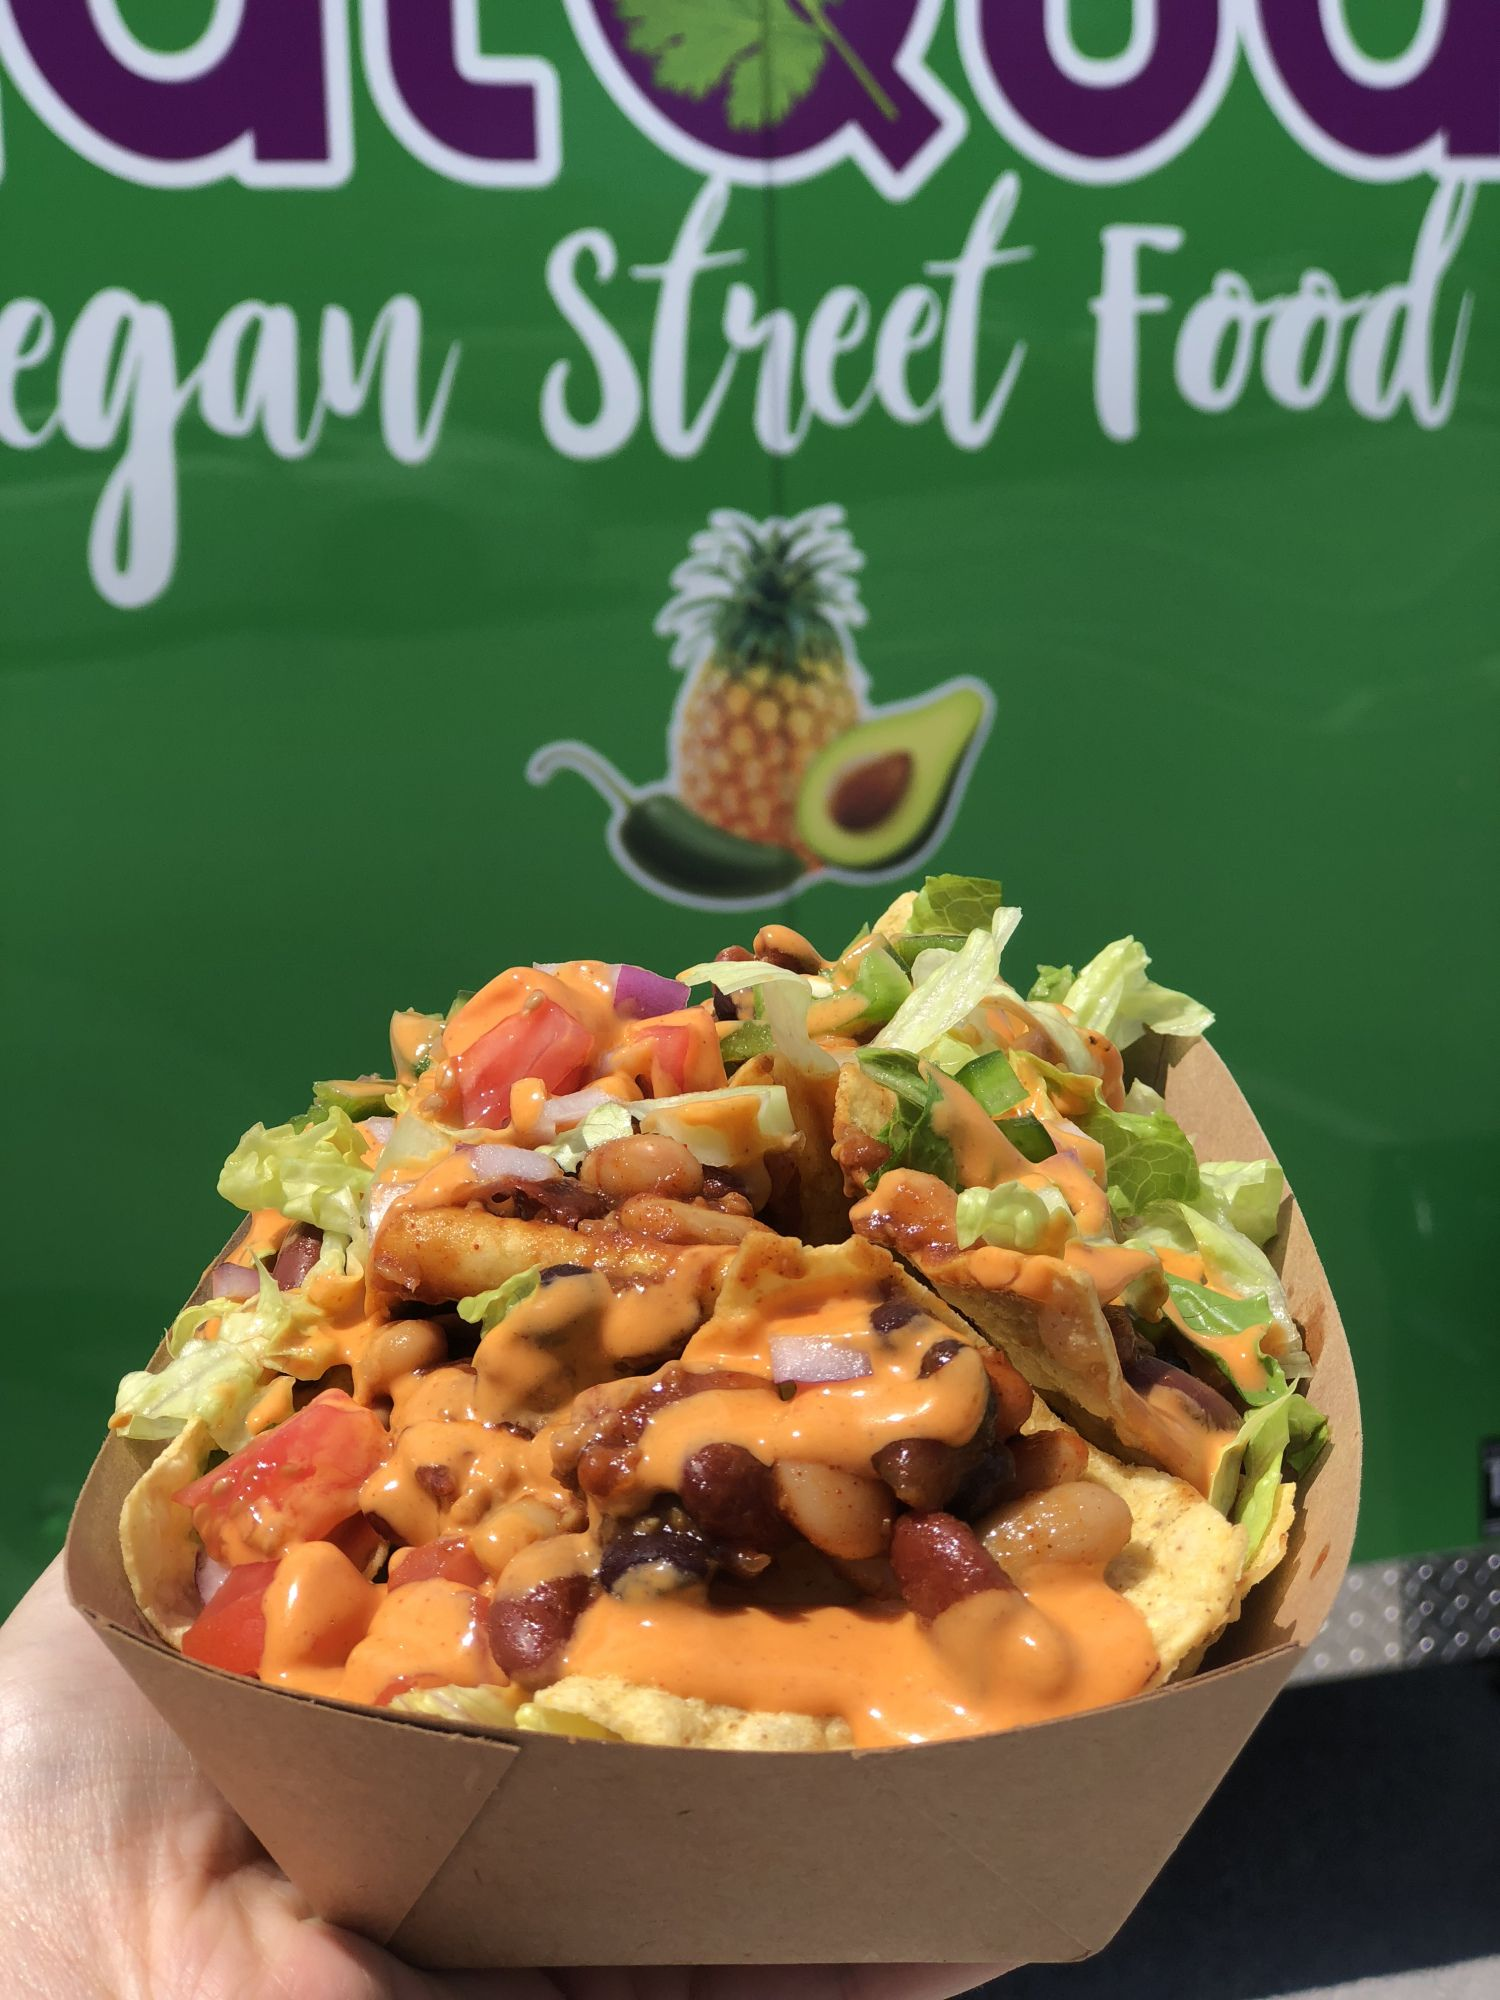 Eatqual Vegan Food Truck Review Space Coast Foodies Brevard County Melbourne Cocoa Beach Satellite Beach Palm Bay Food Vegan Food Truck Beach Meals